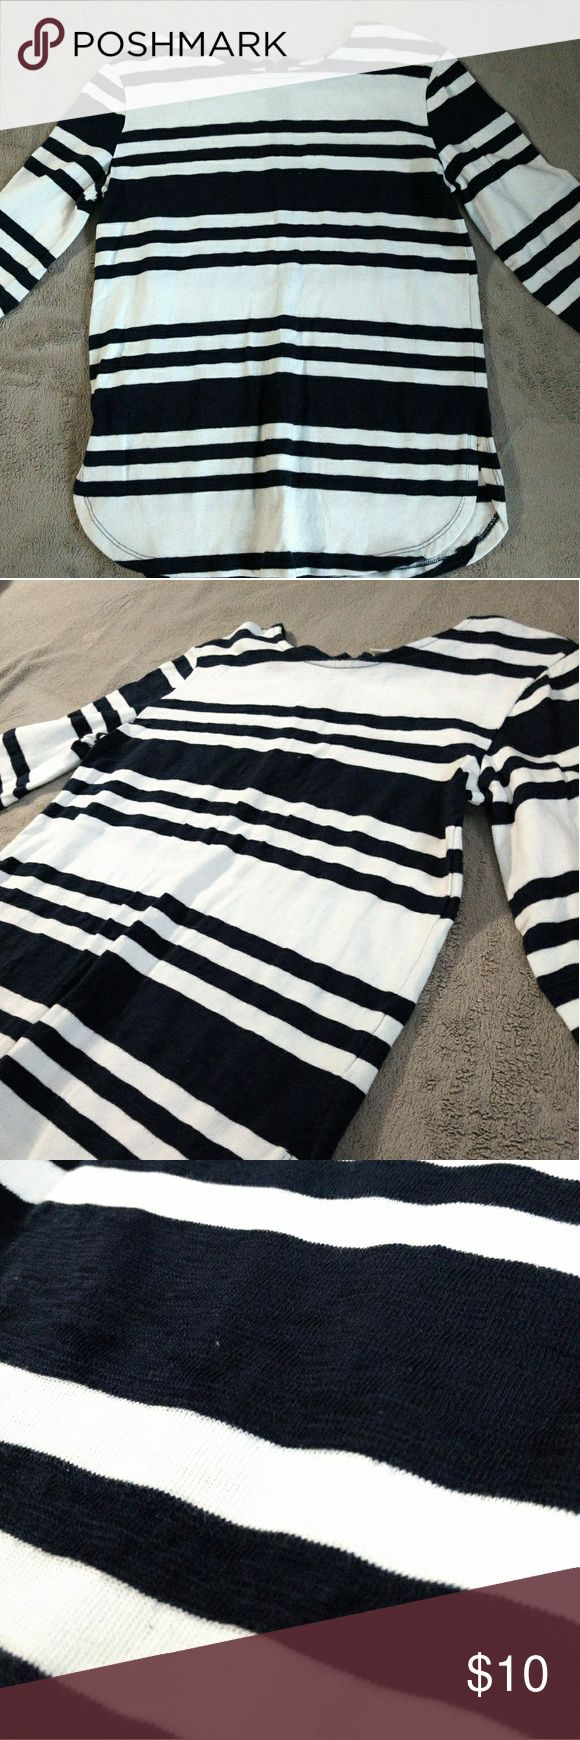 Navy blue and white striped pattern long sleeve CONDITION: used (worn once) BRAND: merona - target SIZE: medium  RUNS: runs large   REFERENCE:  body type - a little above average  170 pounds, 5.4 ft. height top M, bottom size 28   3/4 long sleeve, navy blue and white patterned strips shirt.  100% cotton Merona Tops Tees - Long Sleeve